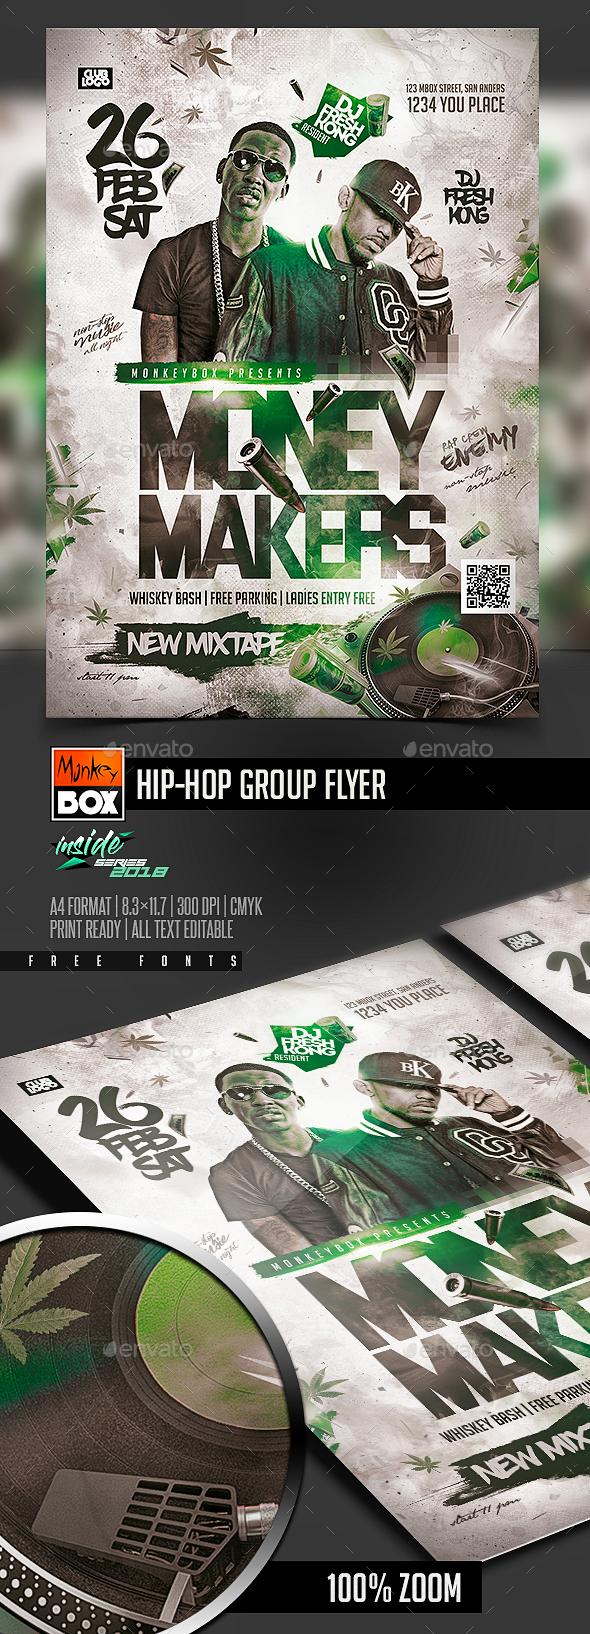 Hip-Hop Group Flyer - Events Flyers